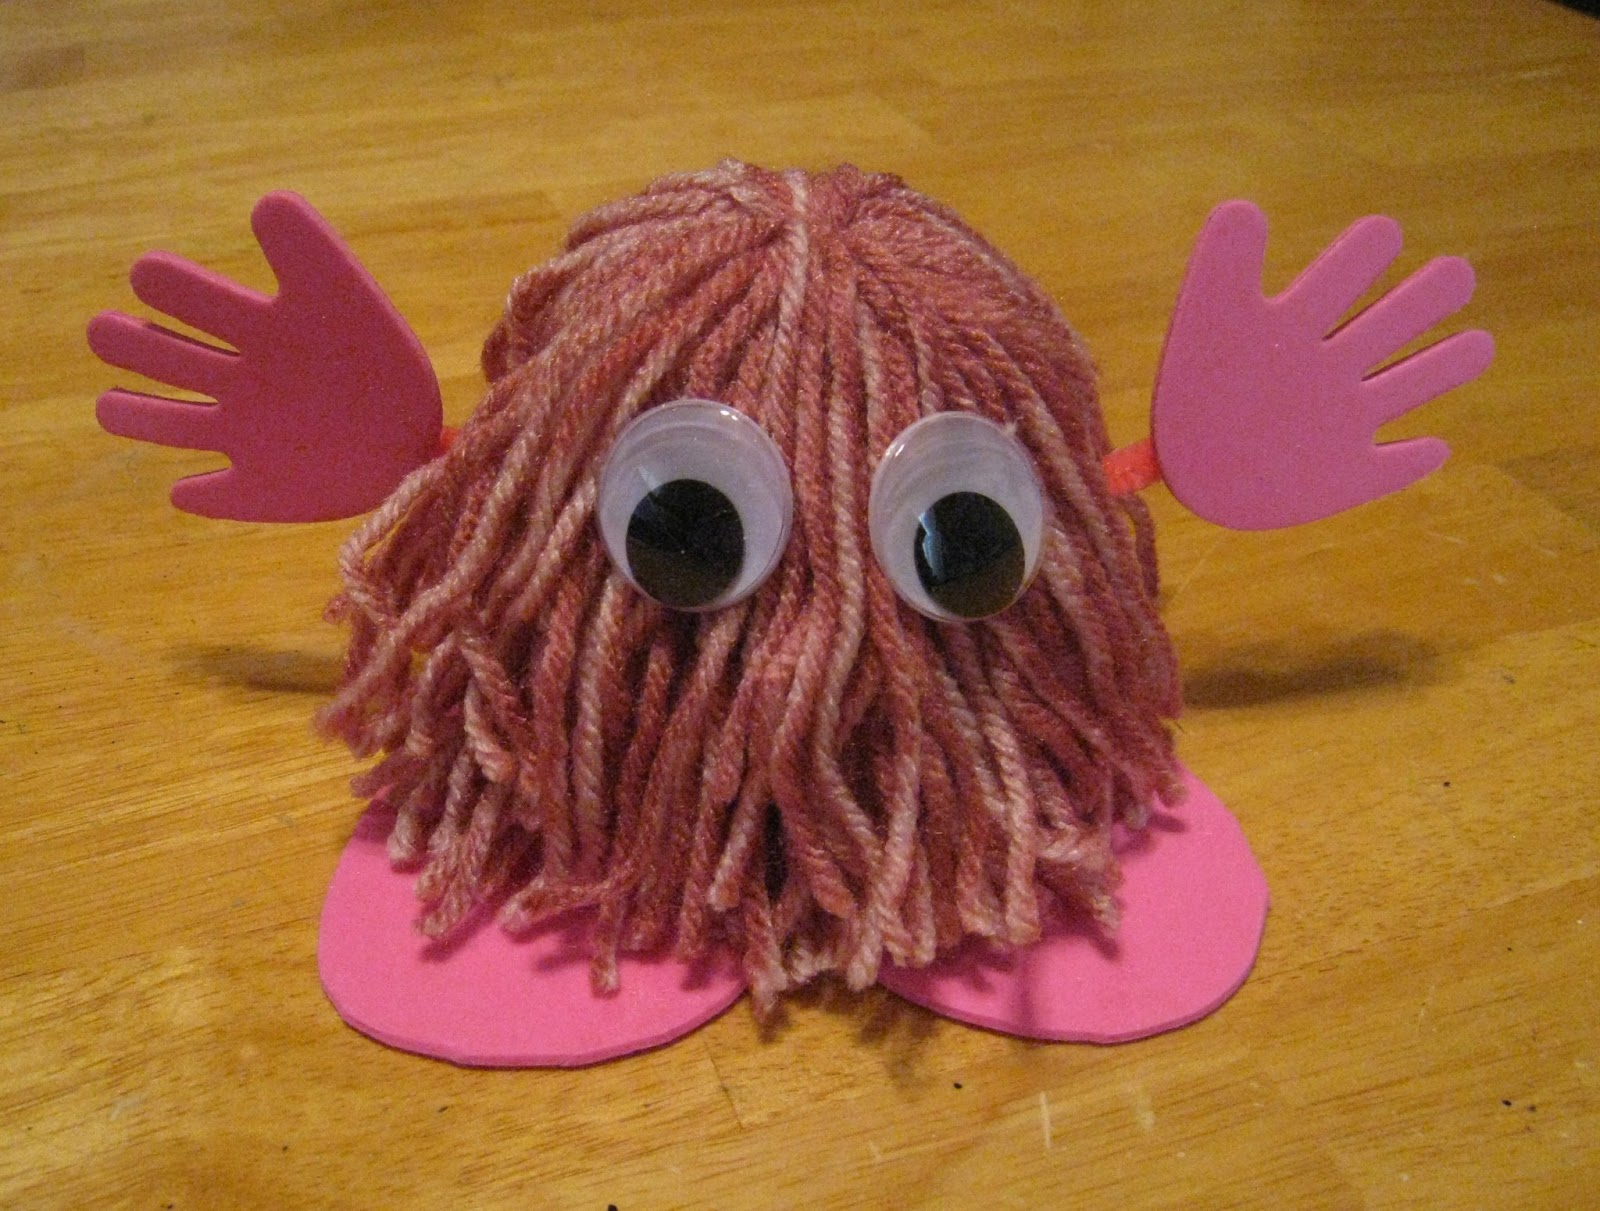 crafts 4 camp  warm fuzzy monsters